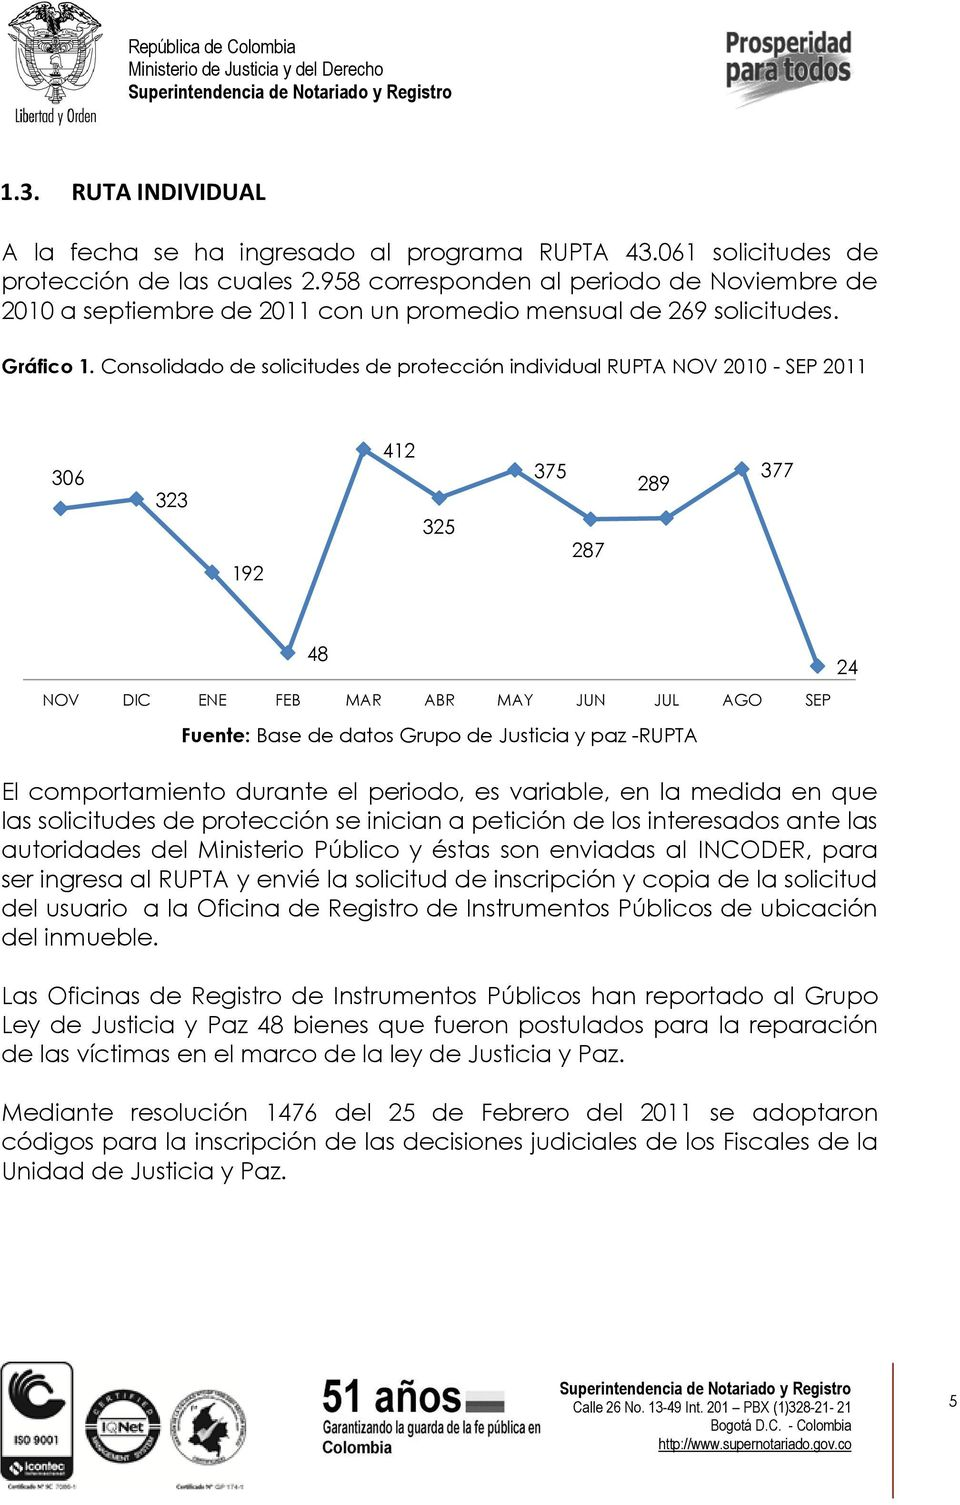 Consolidado de solicitudes de protección individual RUPTA NOV 2010 - SEP 2011 306 323 192 412 325 375 287 289 377 48 NOV DIC ENE FEB MAR ABR MAY JUN JUL AGO SEP Fuente: Base de datos Grupo de